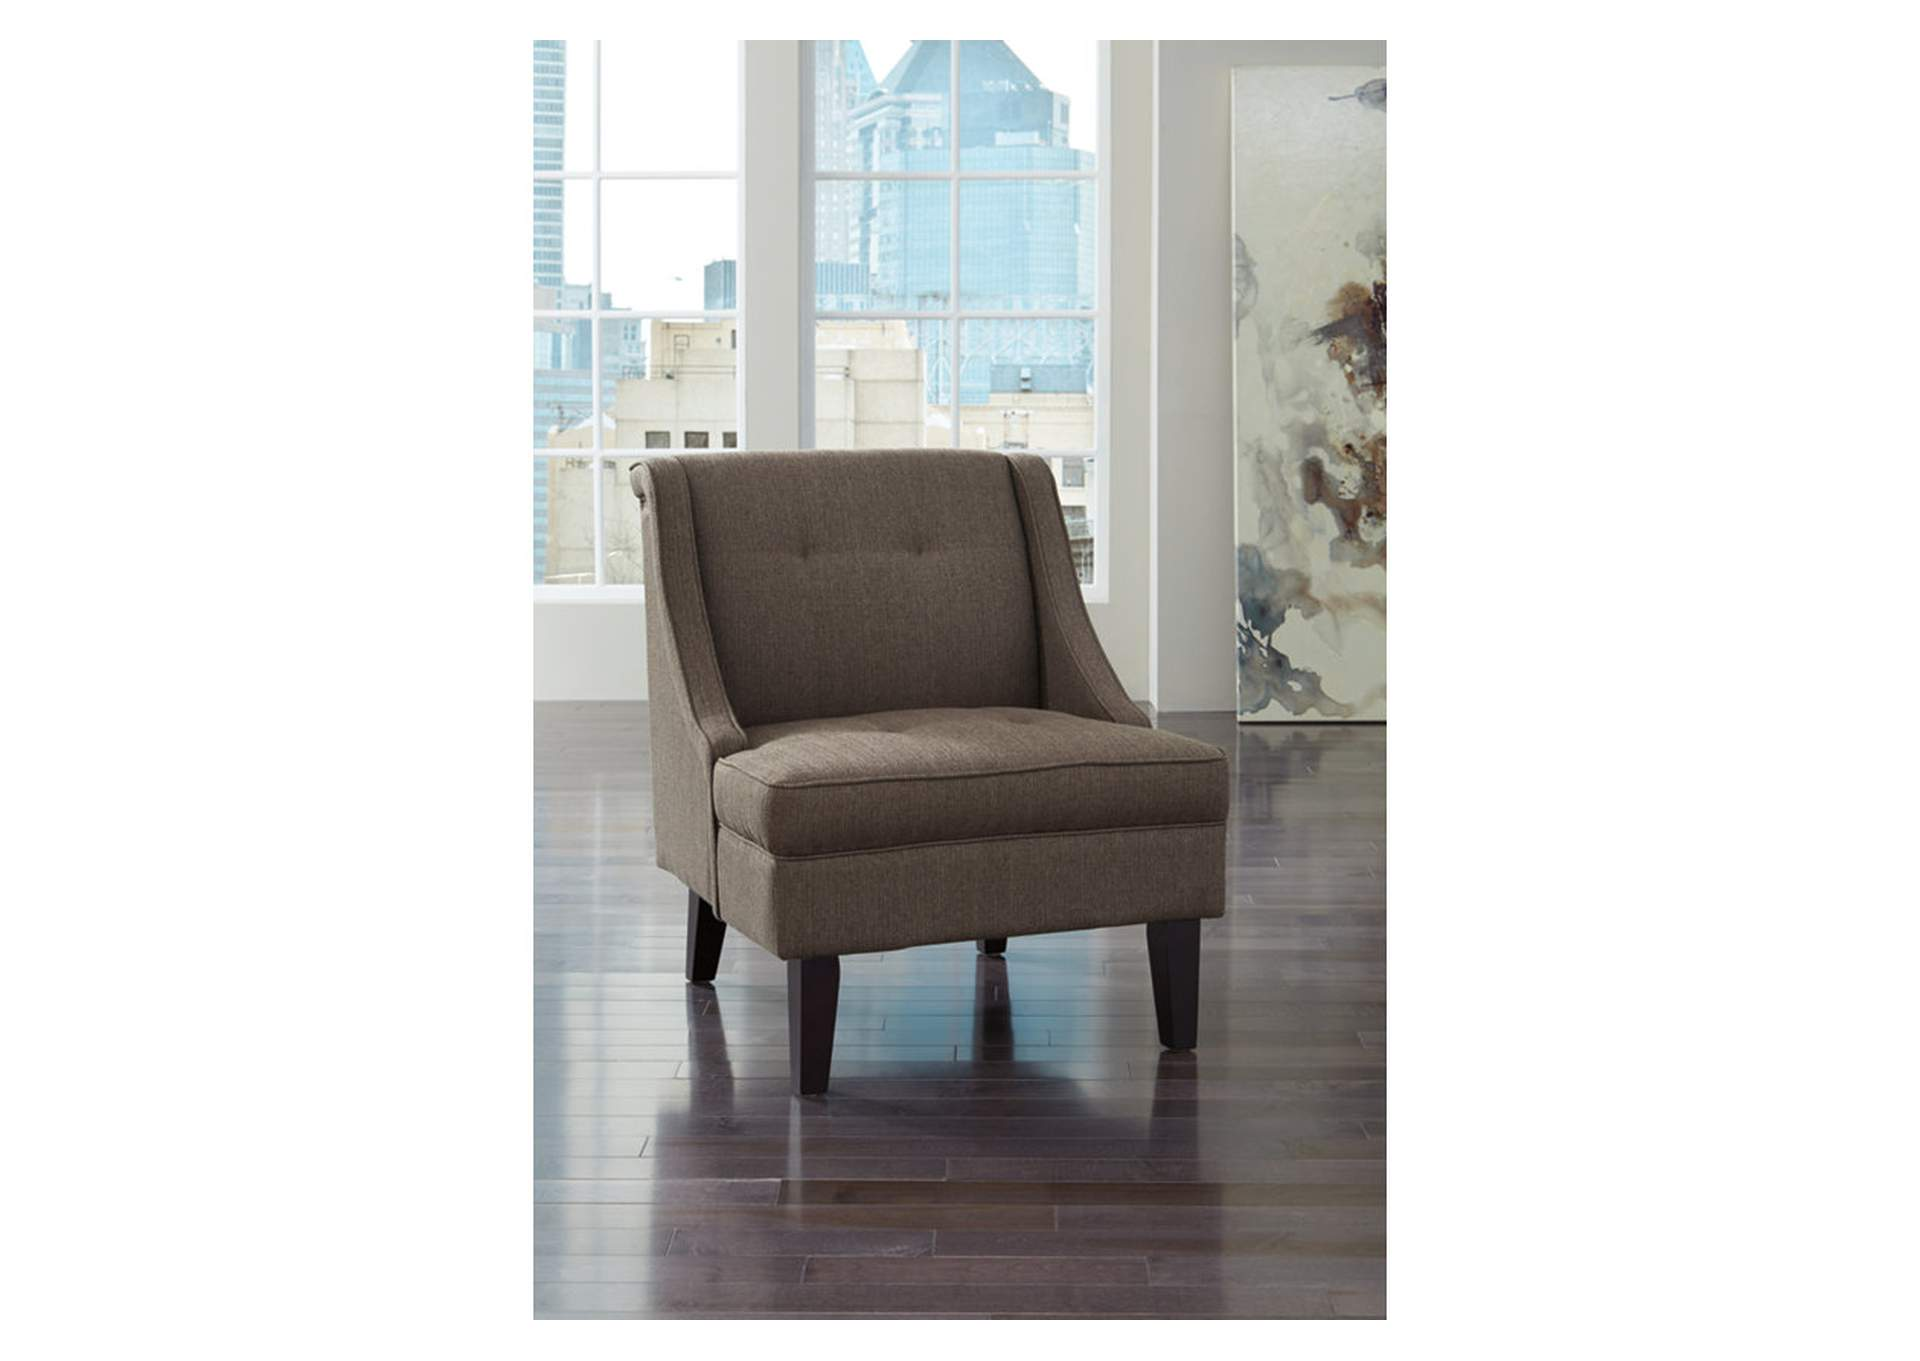 Clarinda Gray Accent Chair,Direct To Consumer Express